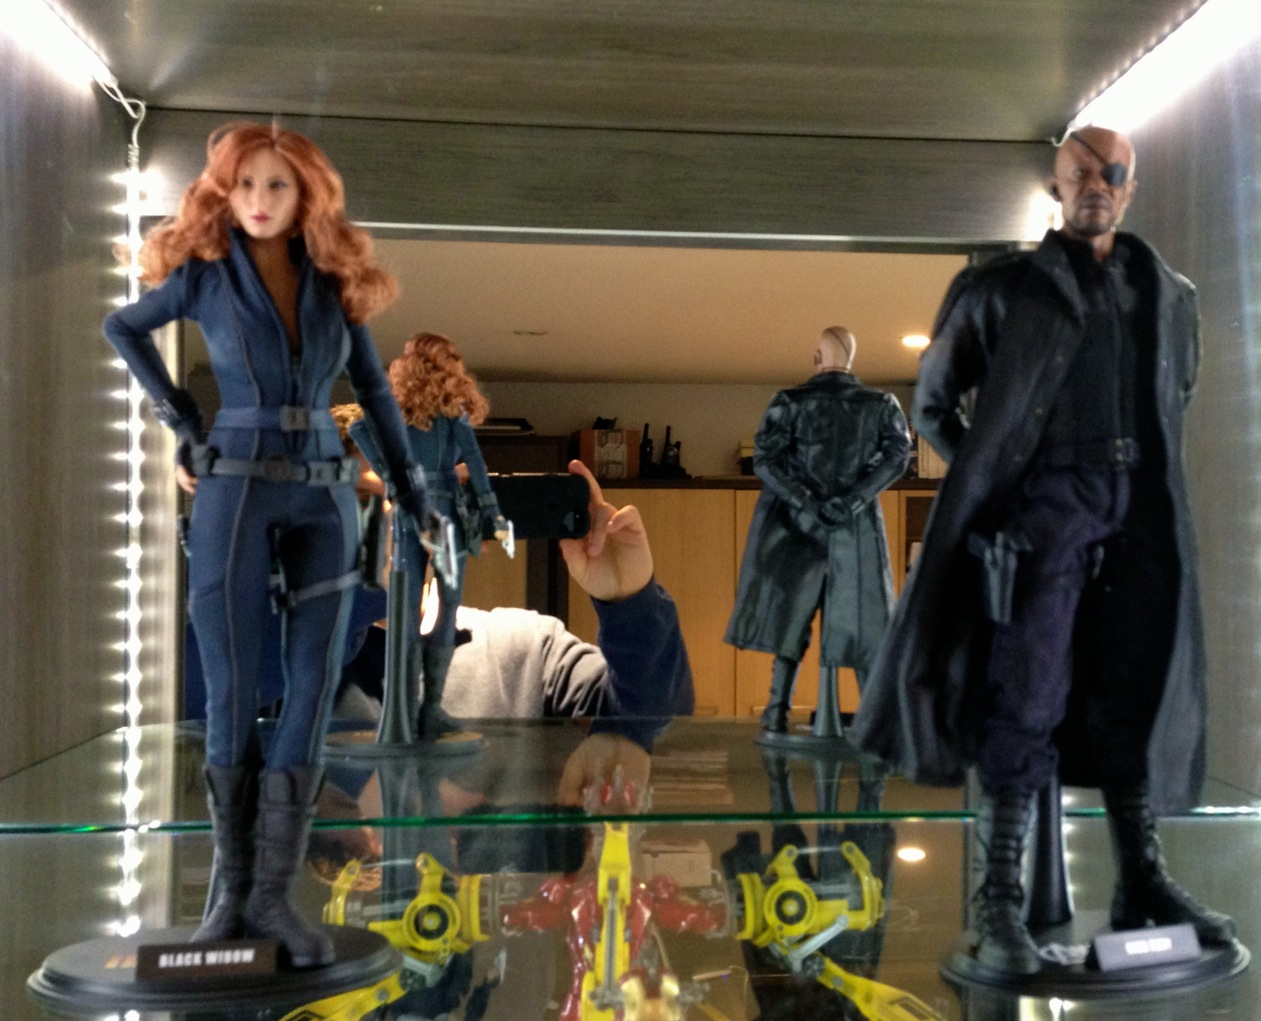 Scanjet784 - Collection Hot Toys - News page 3 - 1305161000279422611196081